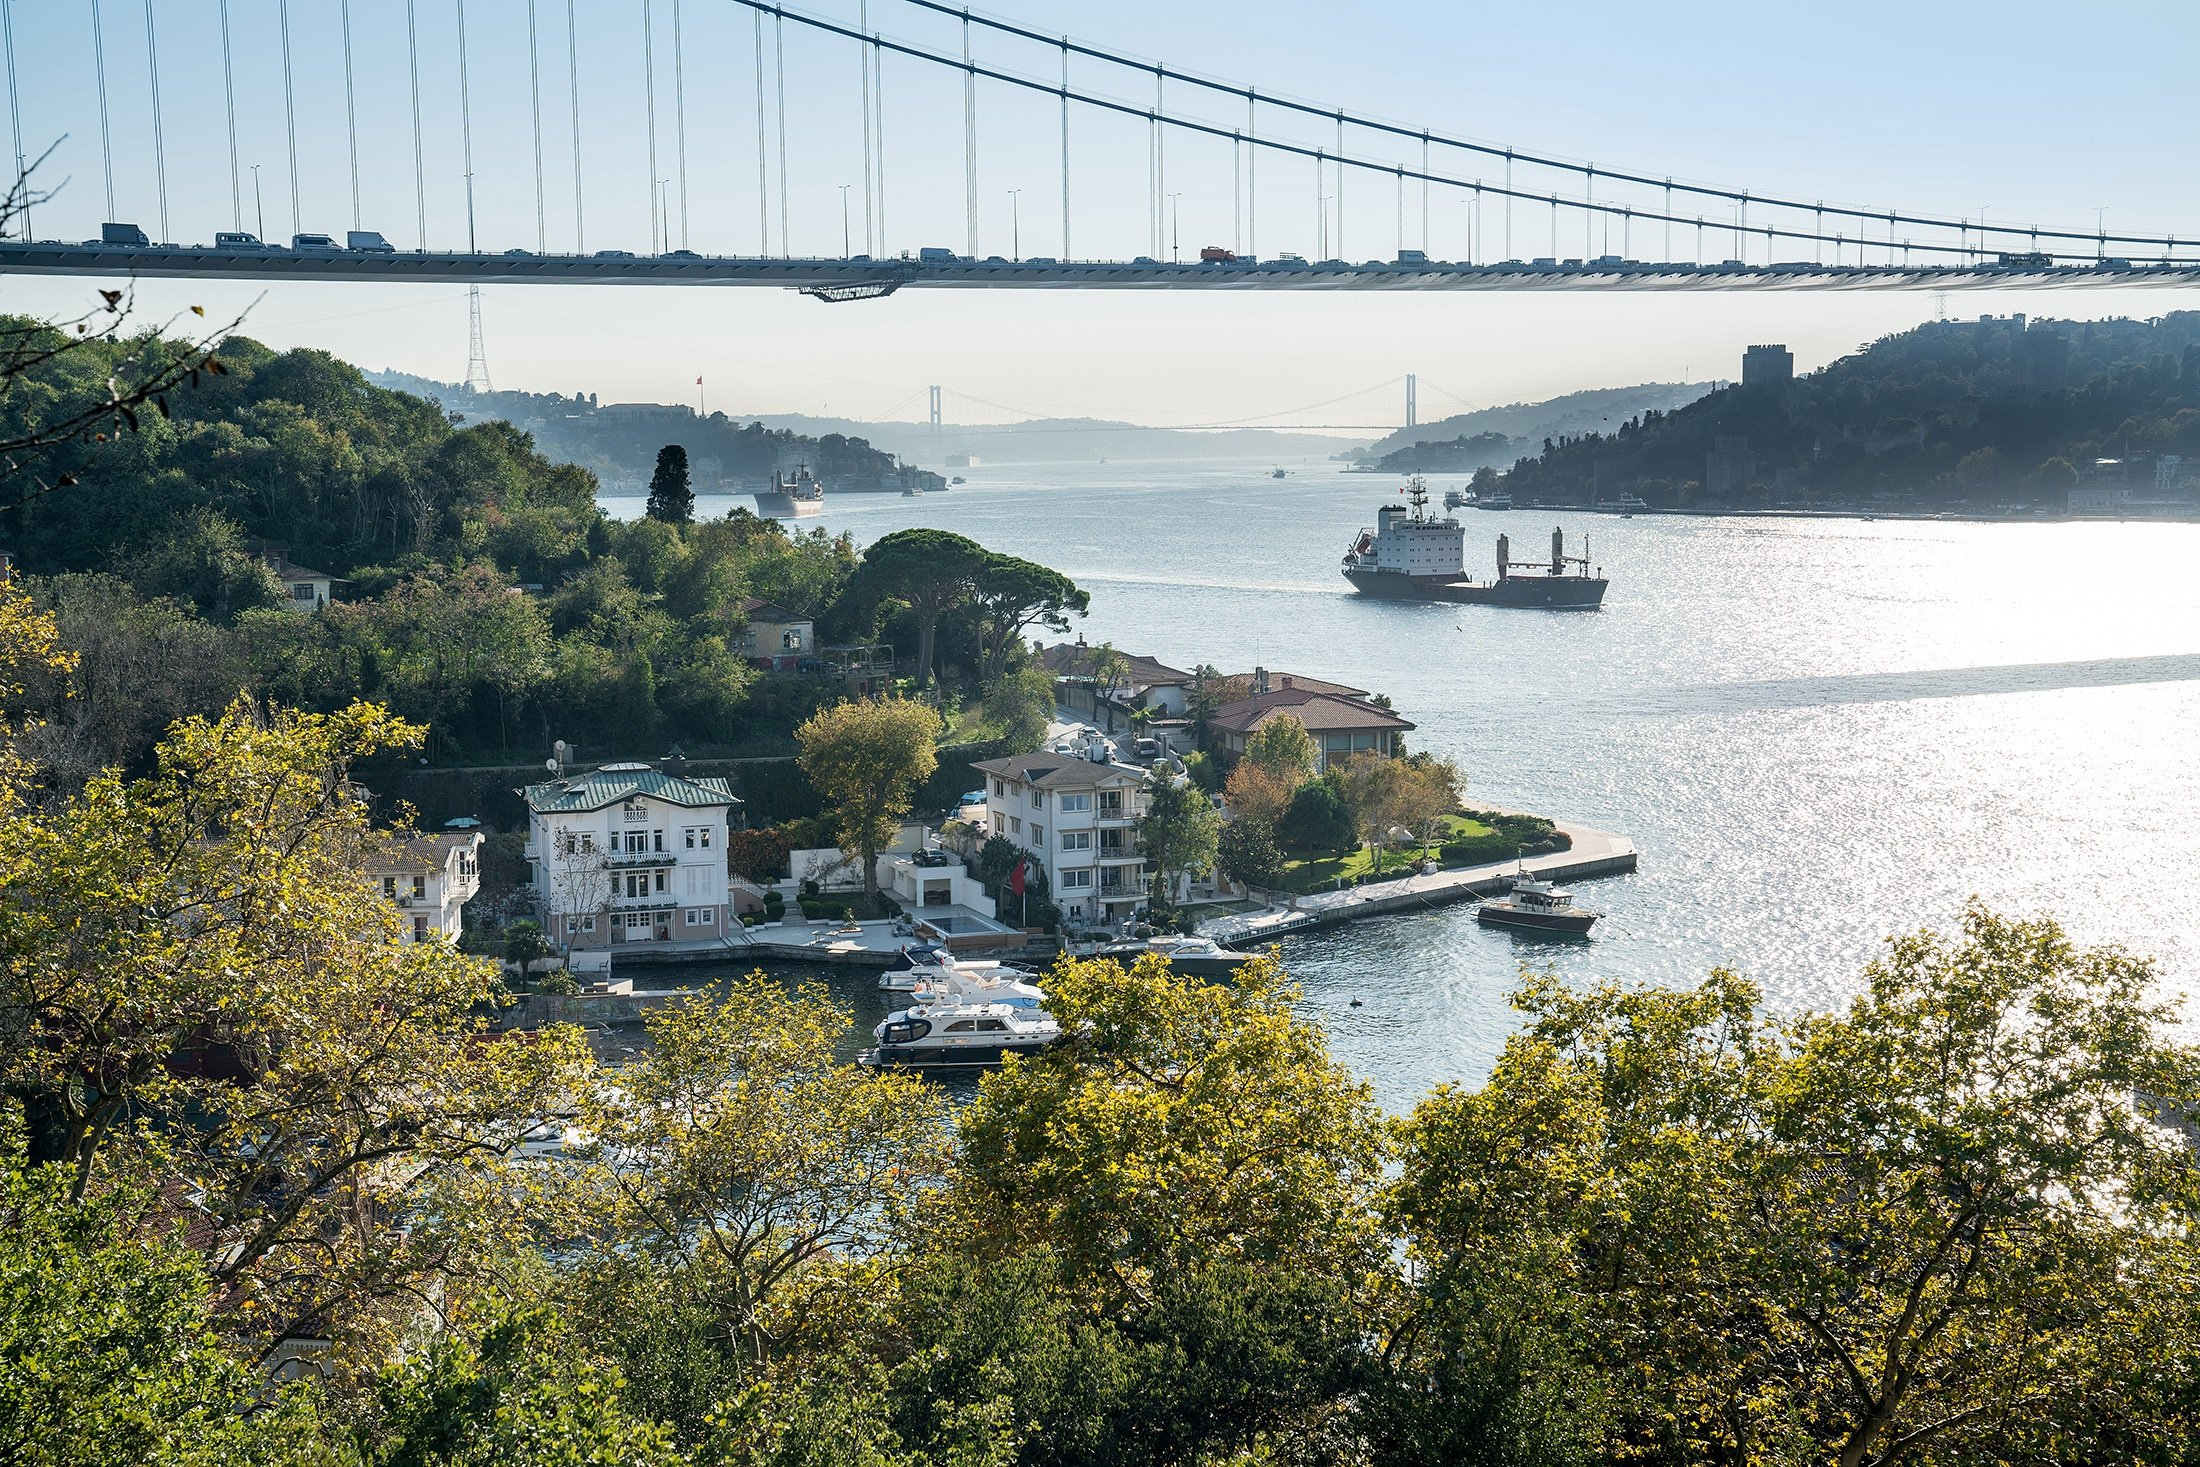 A view of the Bosporus from the Mihrabat Nature Park. (Shutterstock Photo)